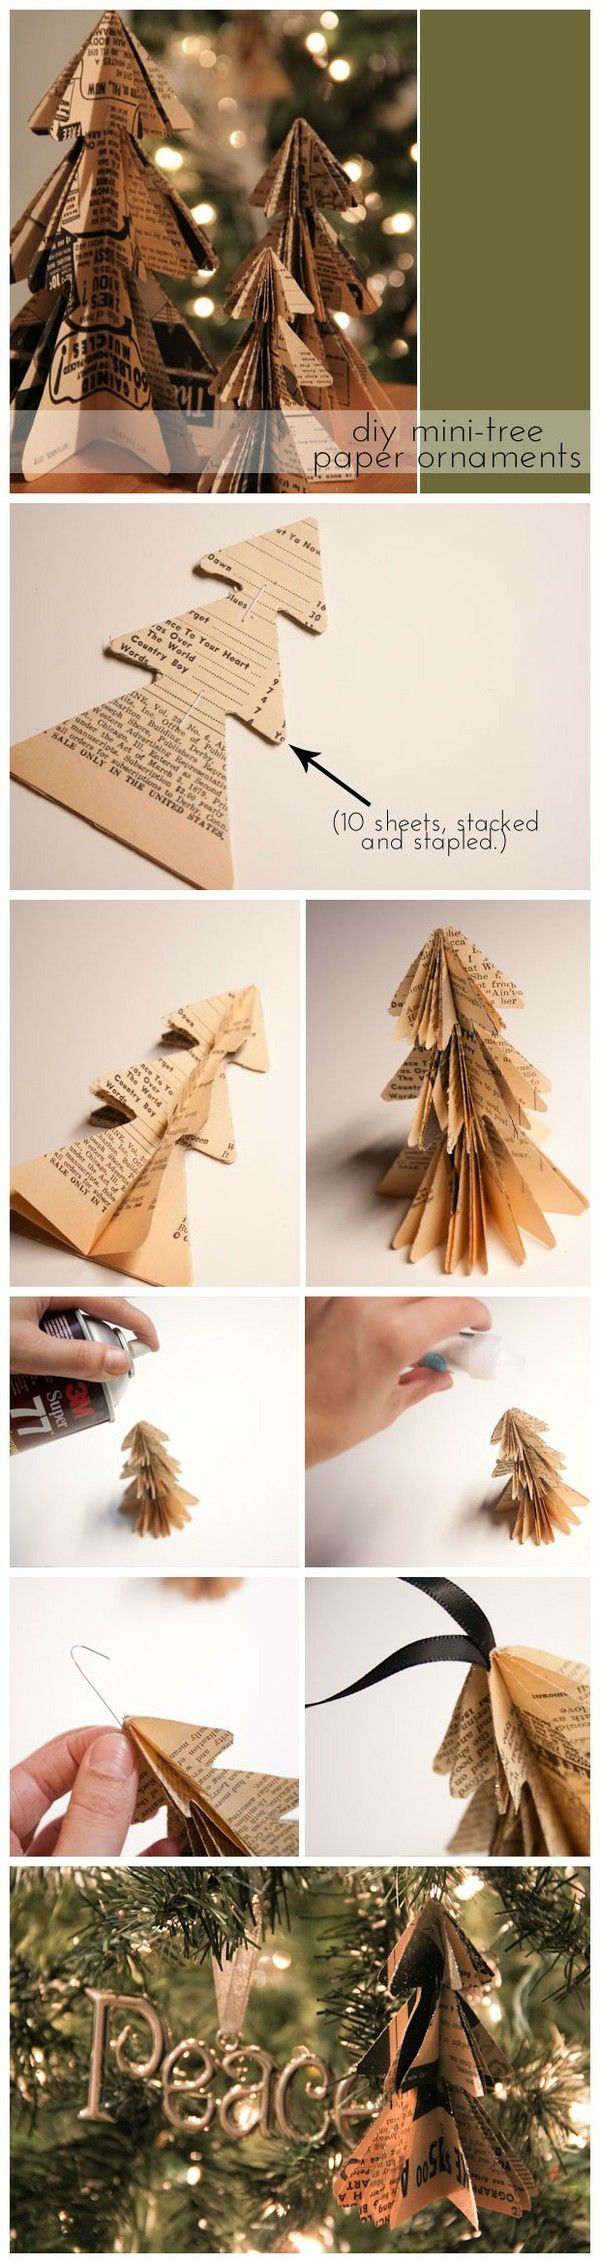 Mini tree book page ornament. Maybe add mod podge to make it stronger?